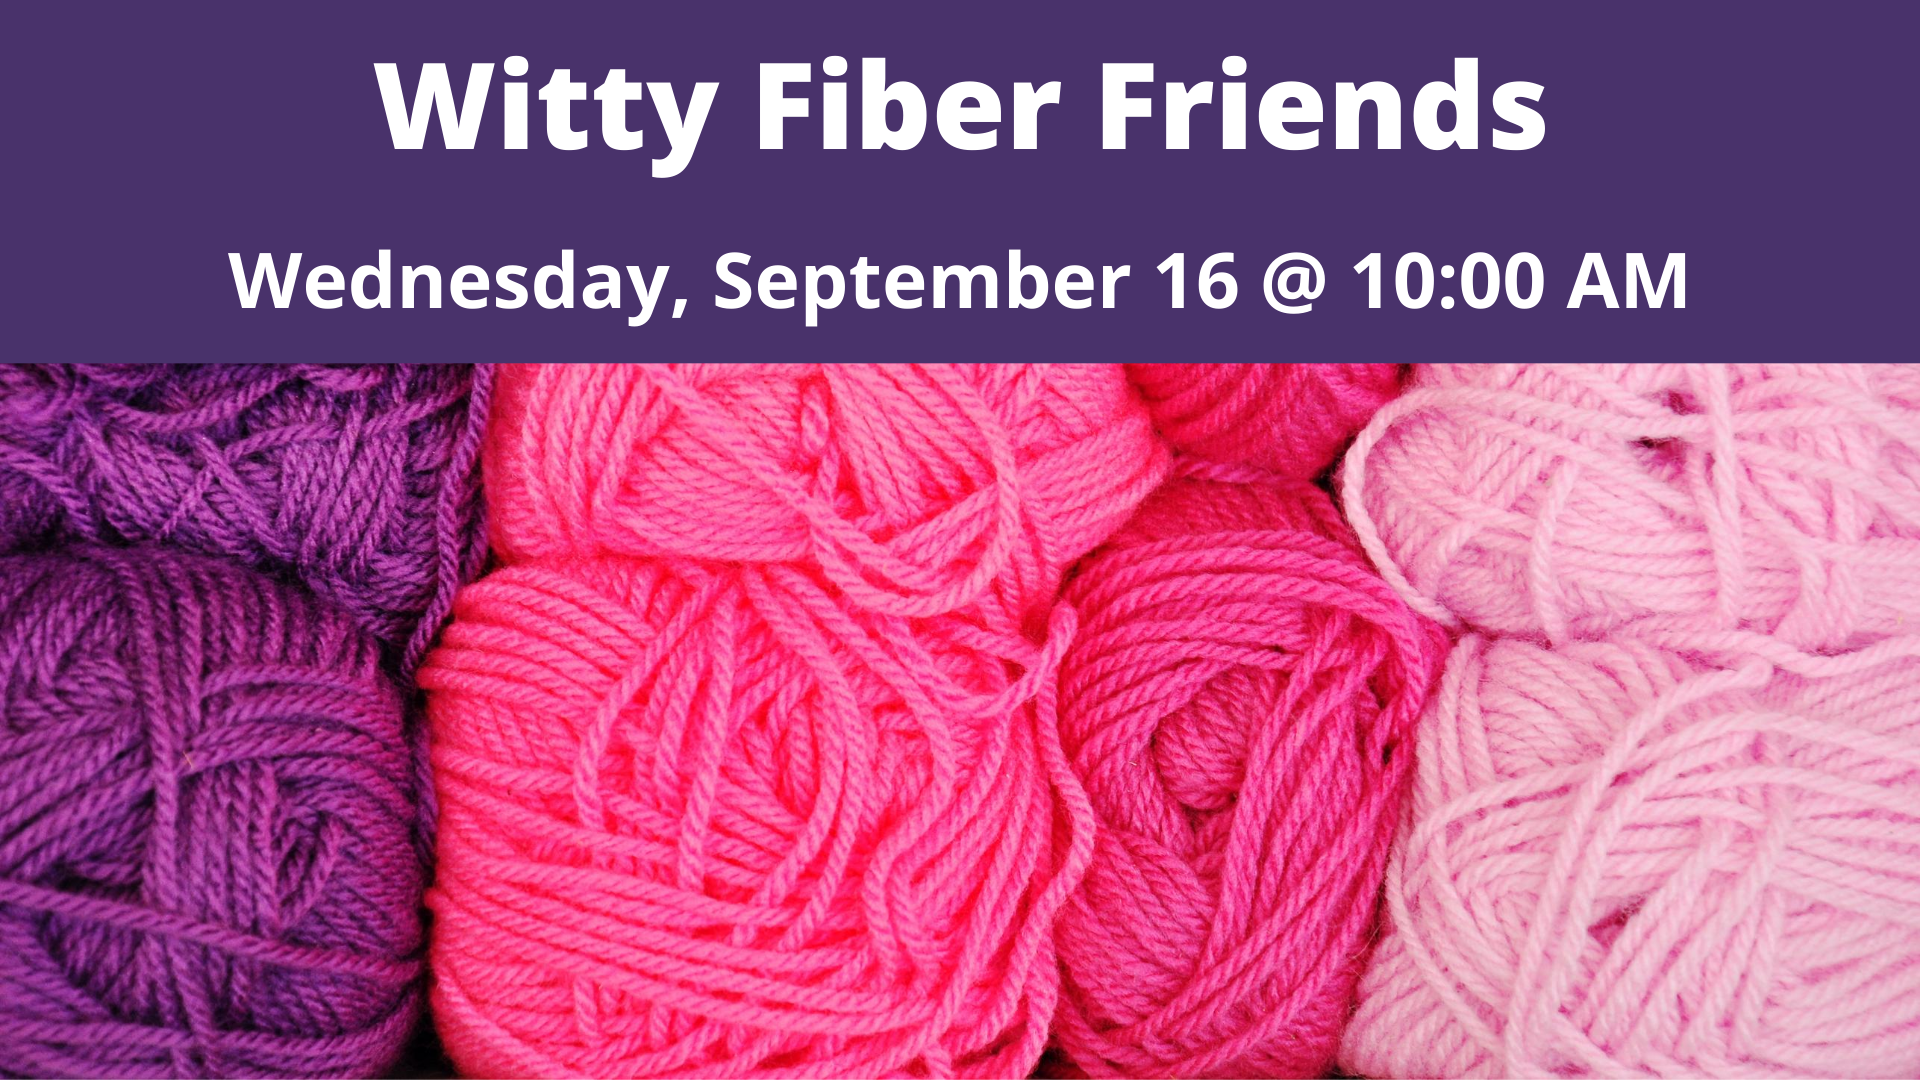 Witty Fiber Friends